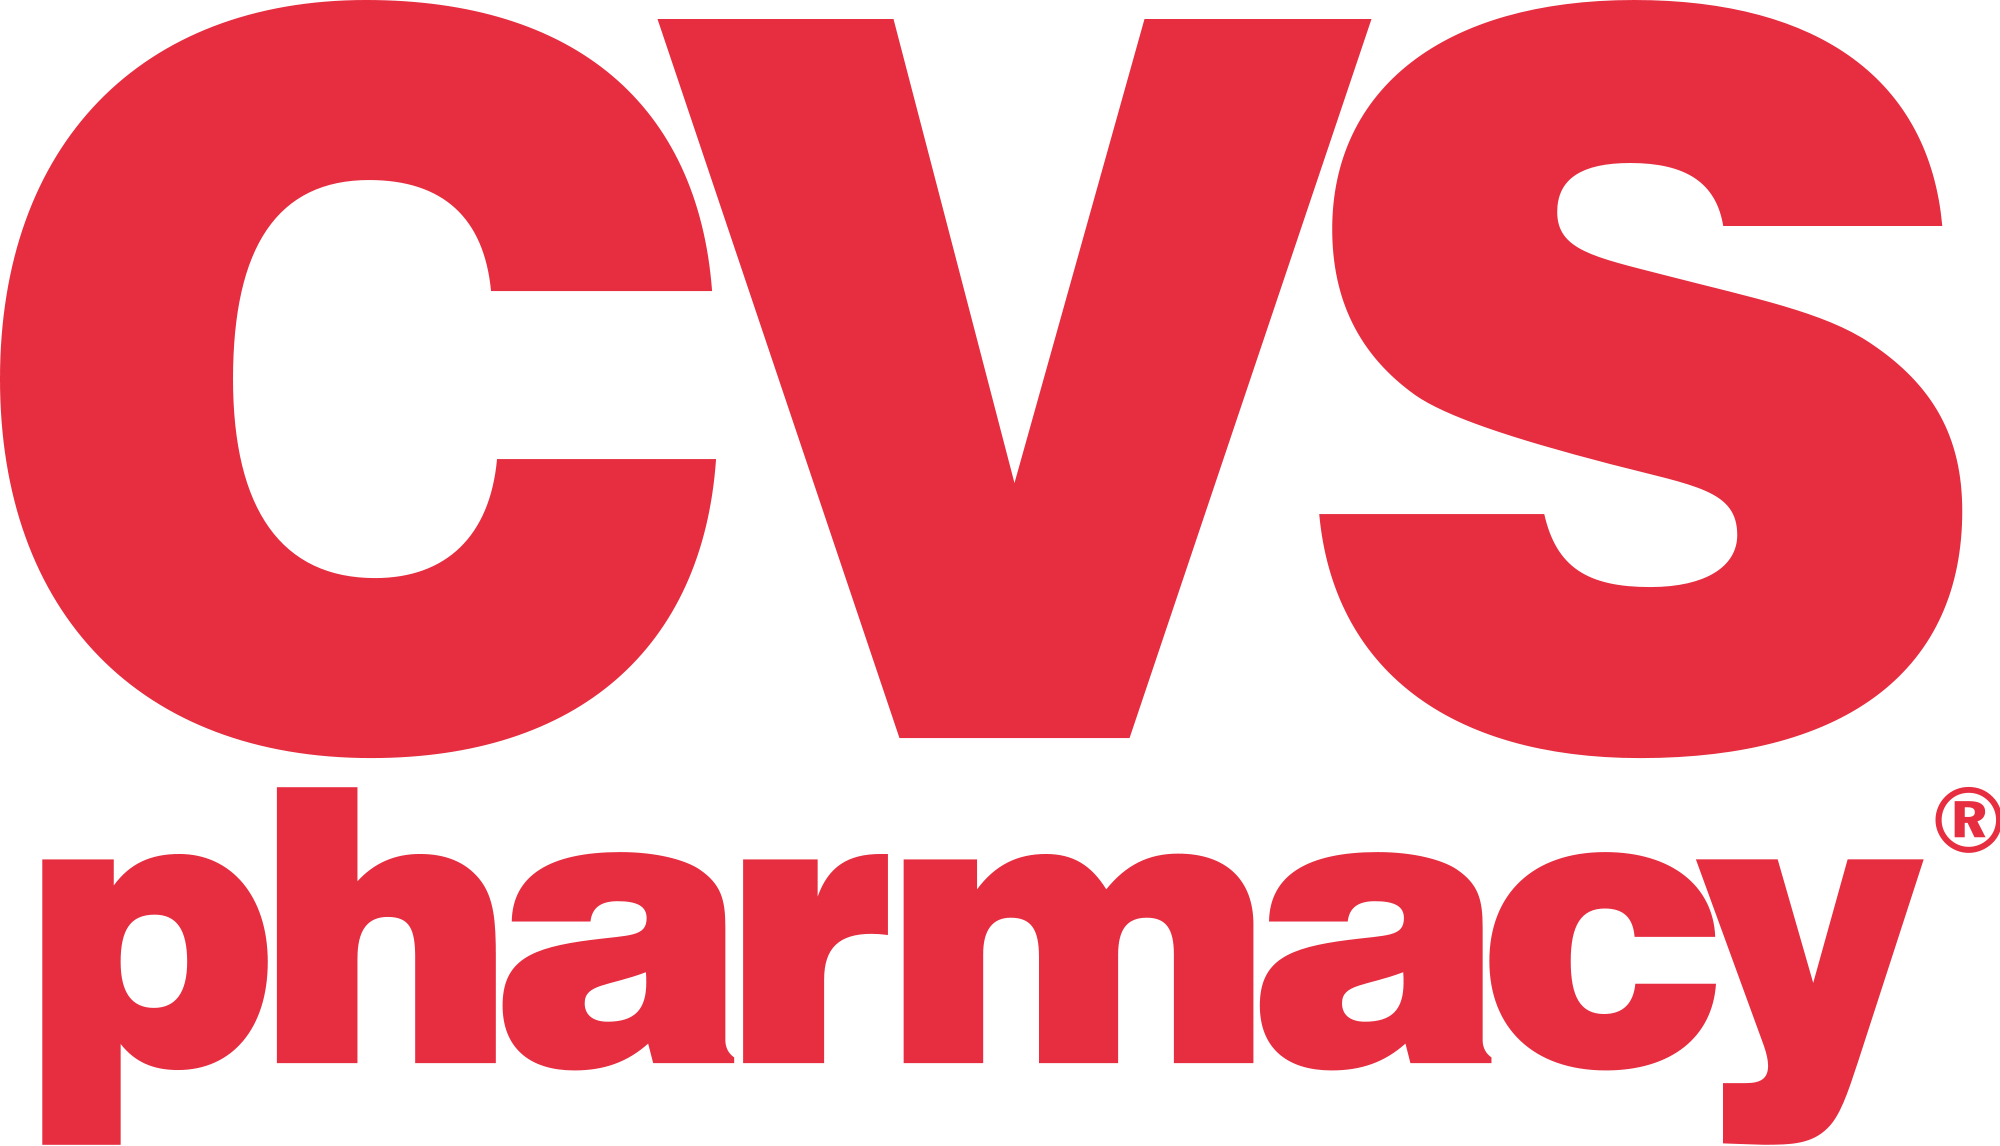 CVS Photo promo codes can be entered when you're finished with your order. Once you finish selecting shipping or in-store pickup, you'll arrive at the cart page. The entry box is located at the bottom.